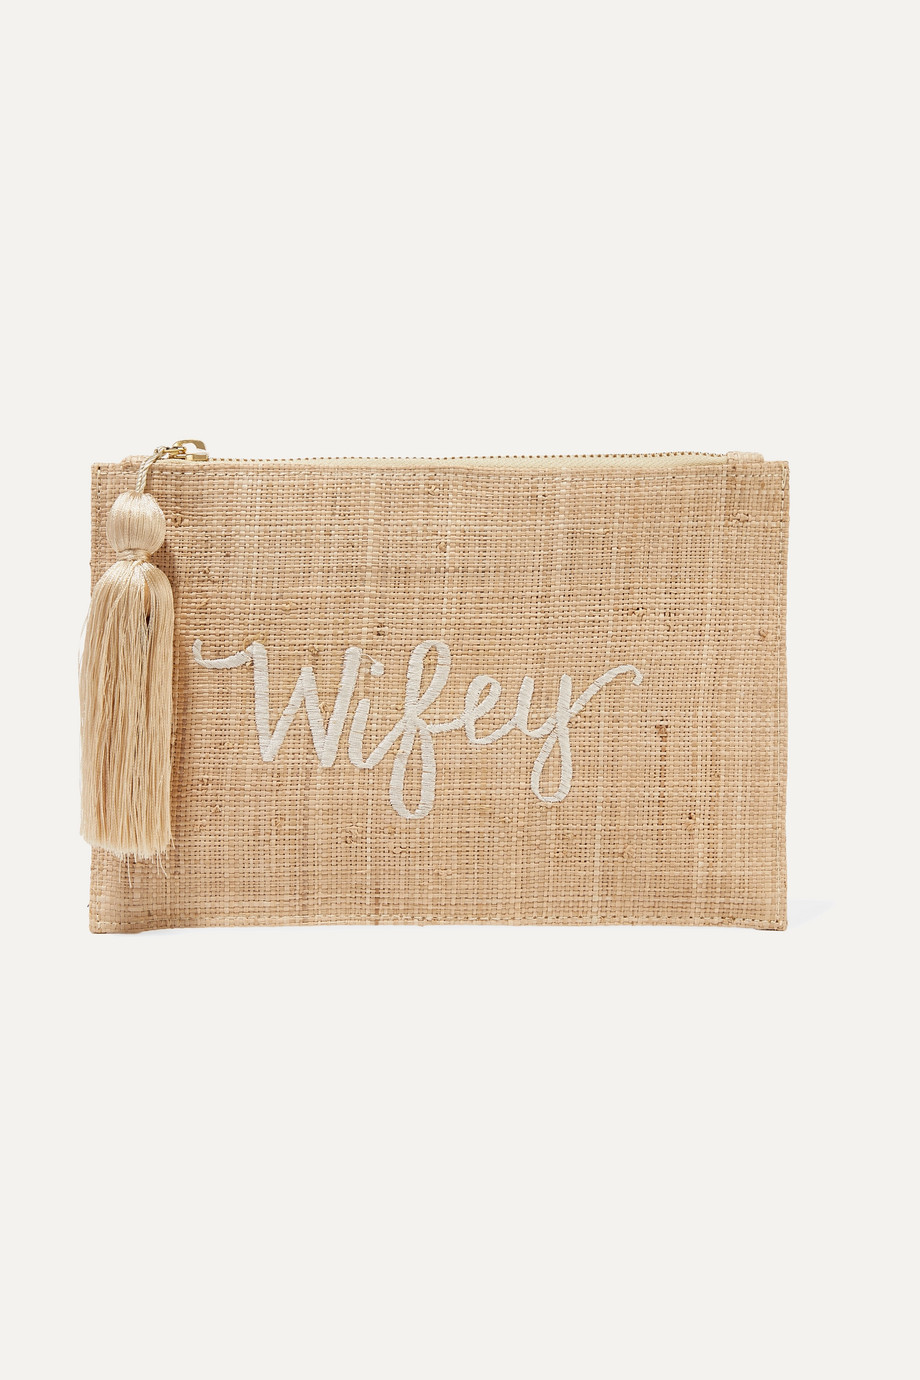 KAYU Wifey embroidered woven straw pouch